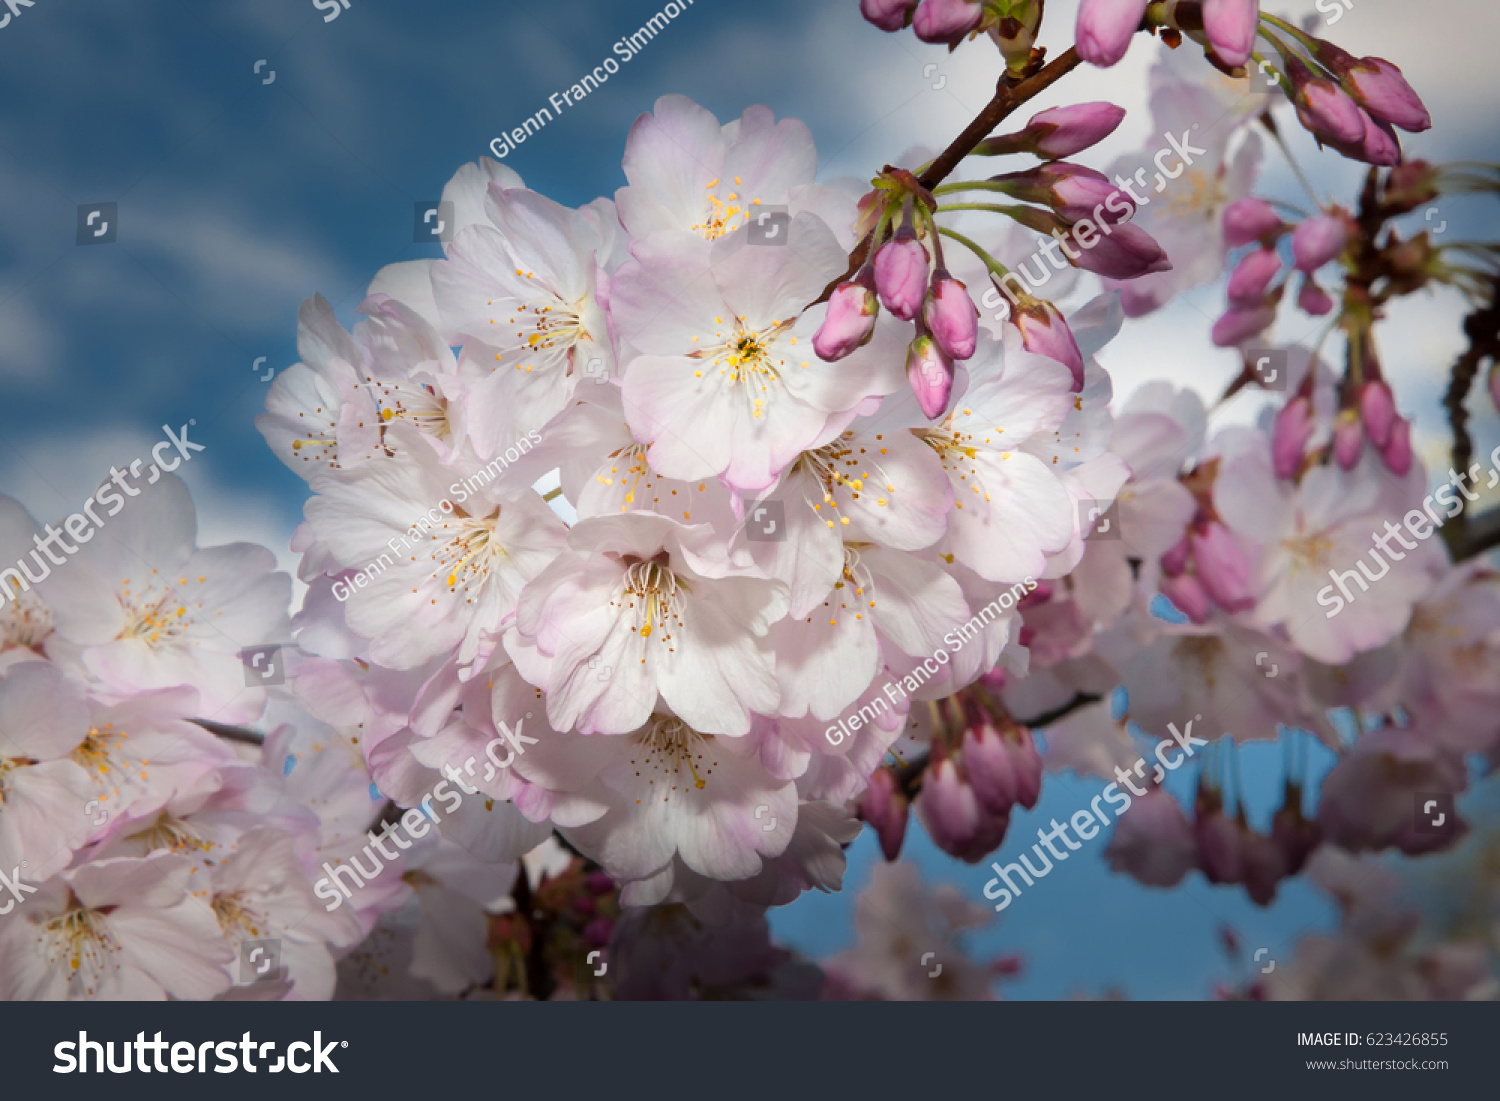 Pink White Cherry Blossoms Background Blue Stock Photo Edit Now